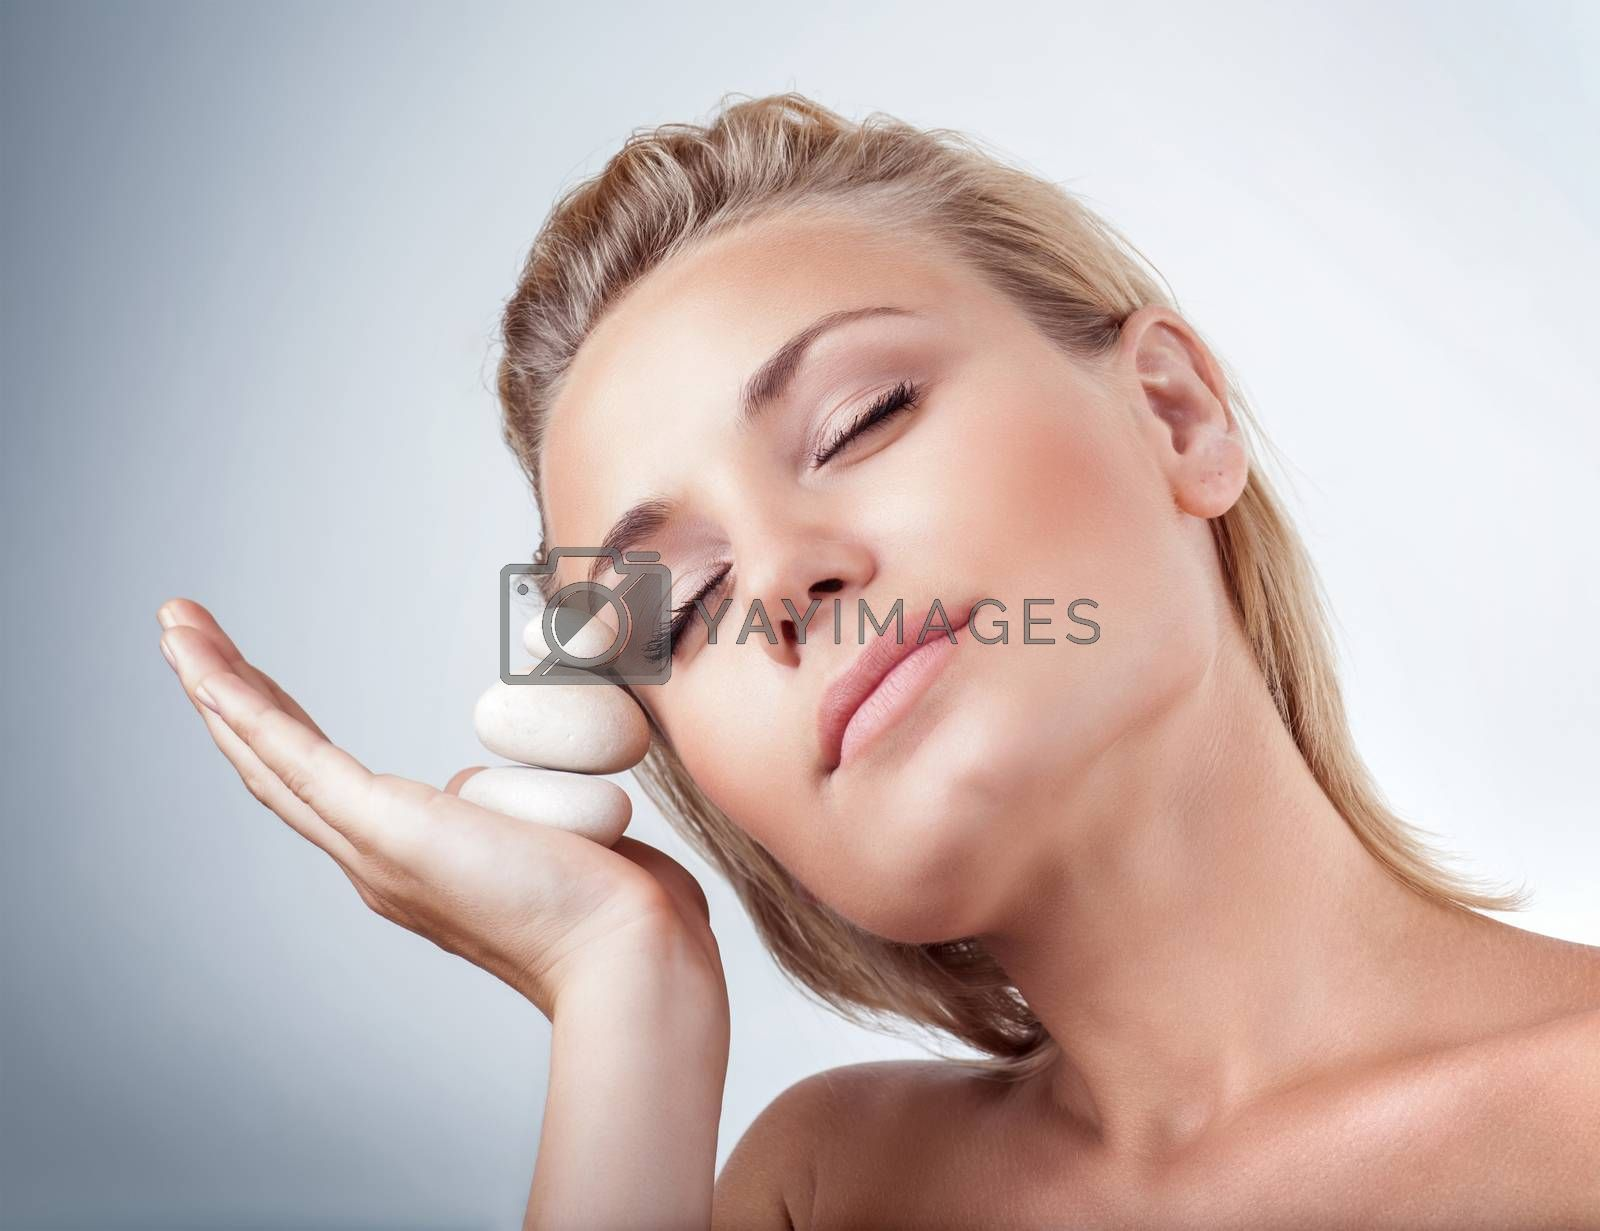 Portrait of gentle female with closed eyes holding on hand spa stones over gray background, healthy lifestyle, beauty and spa salon